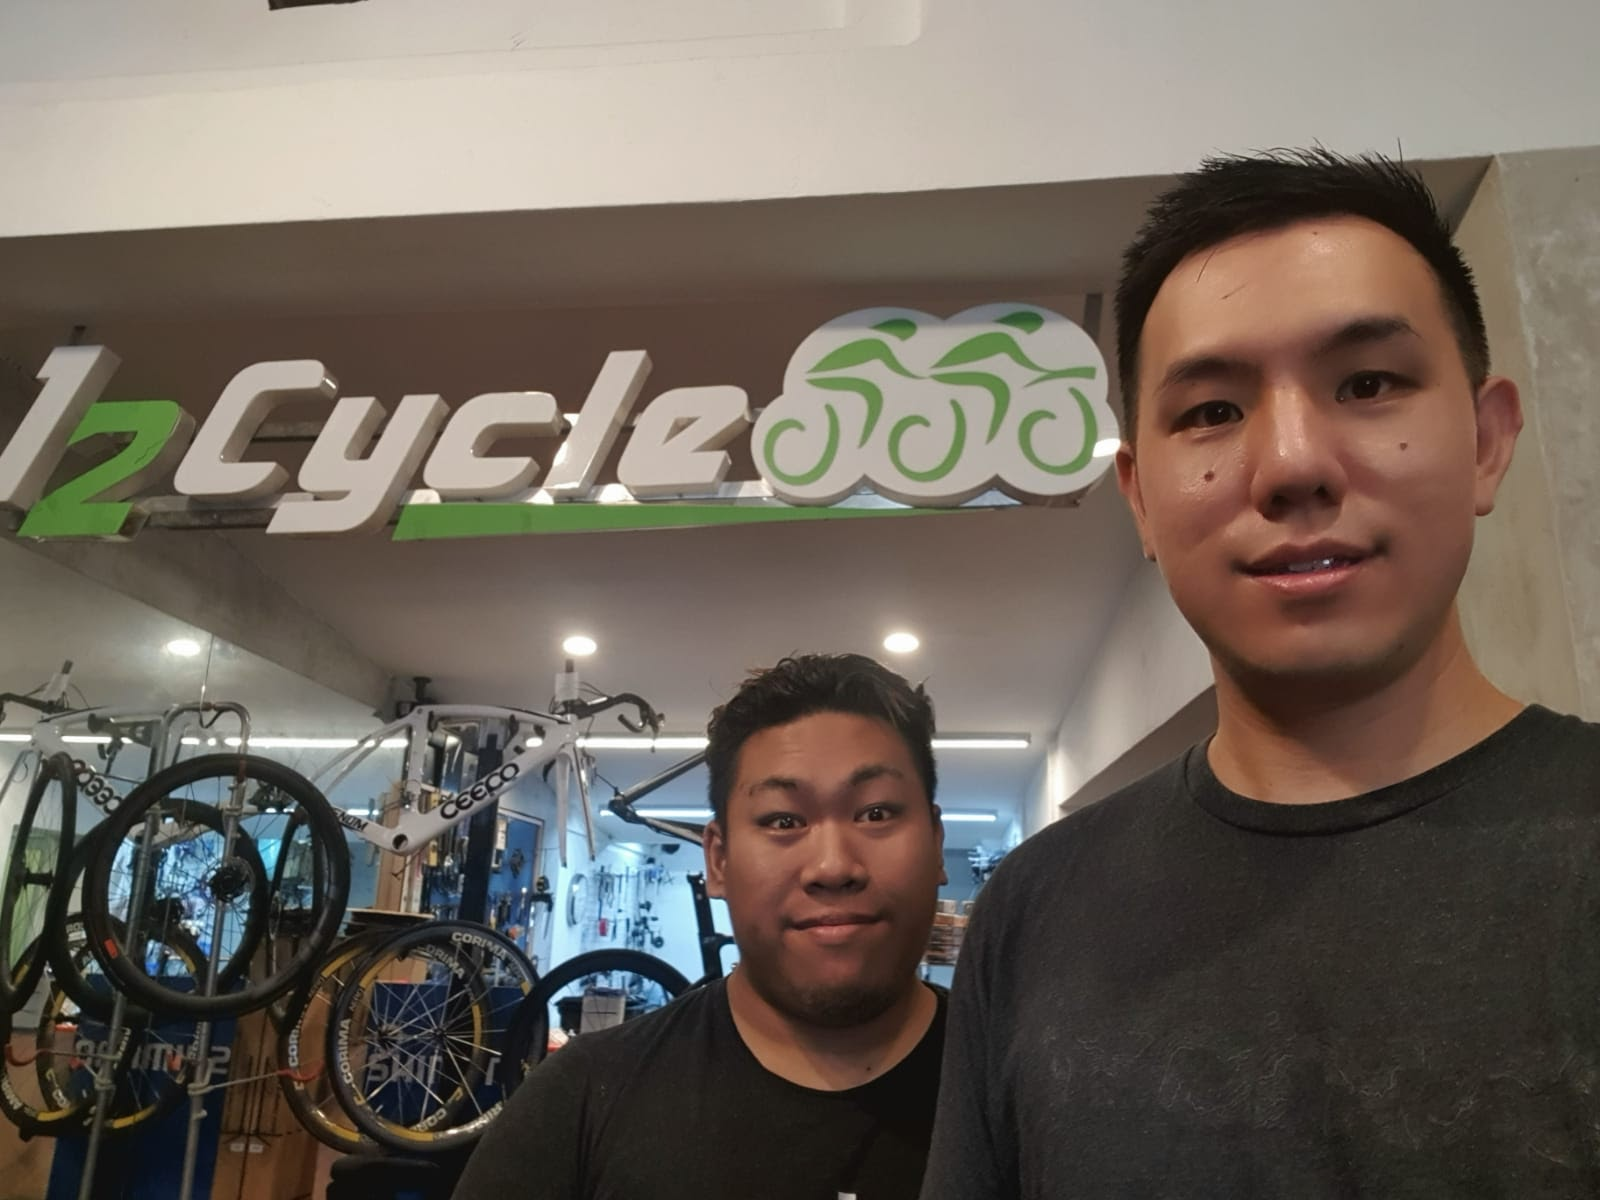 Zhenrong and Hassan of 12Cycle